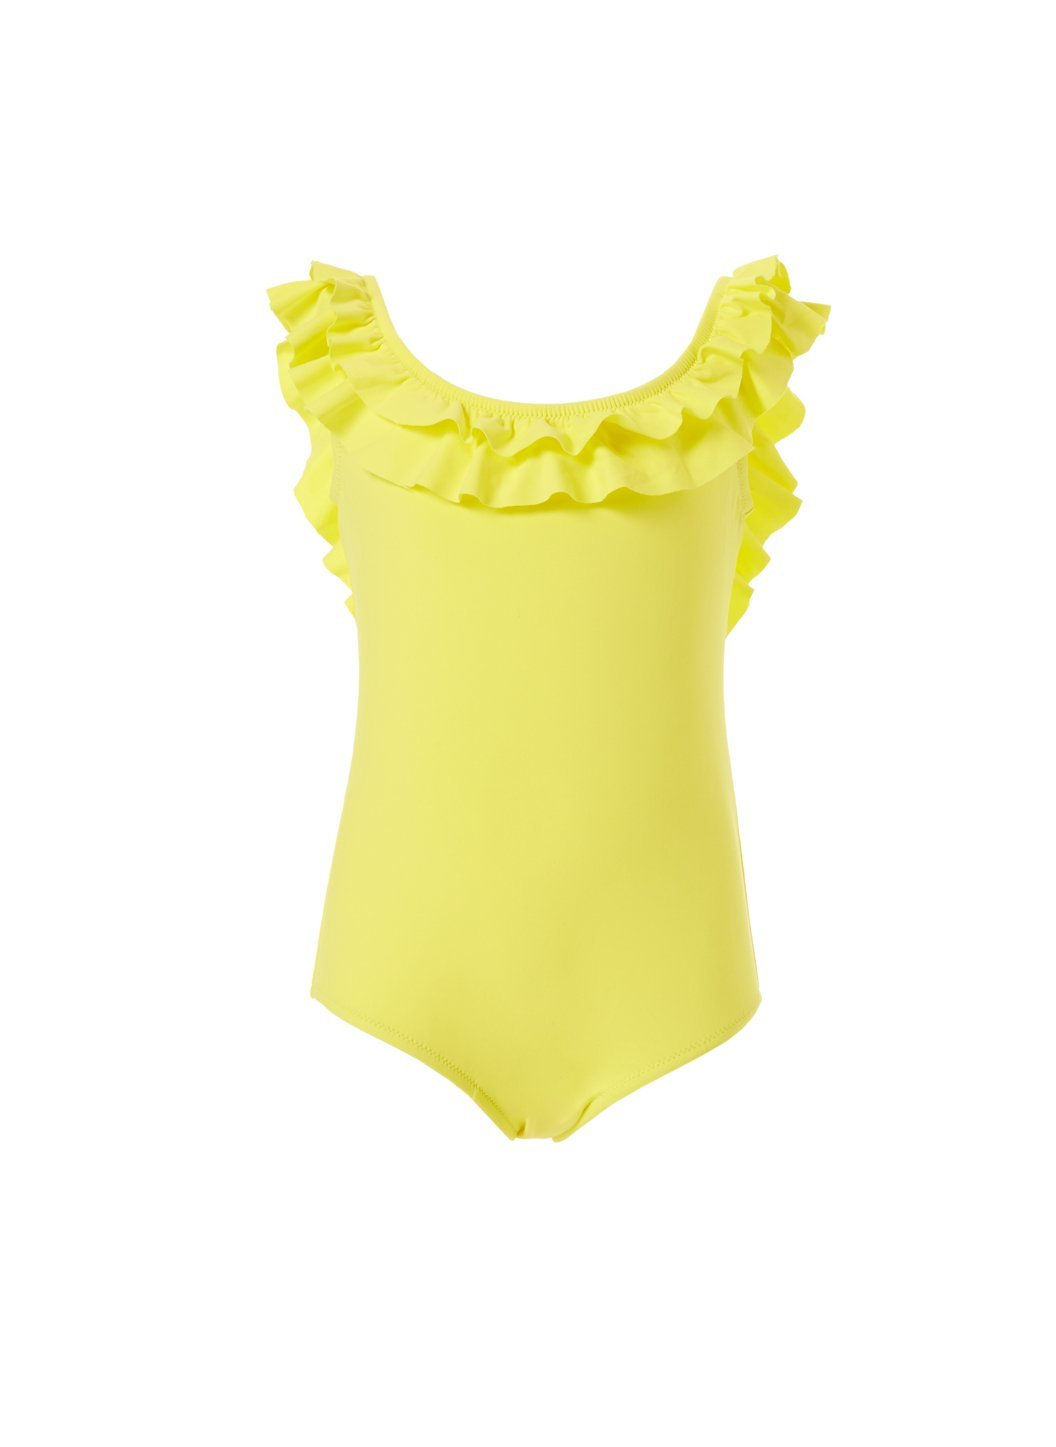 baby missy yellow over the shoulder frill onepiece swimsuit 2019